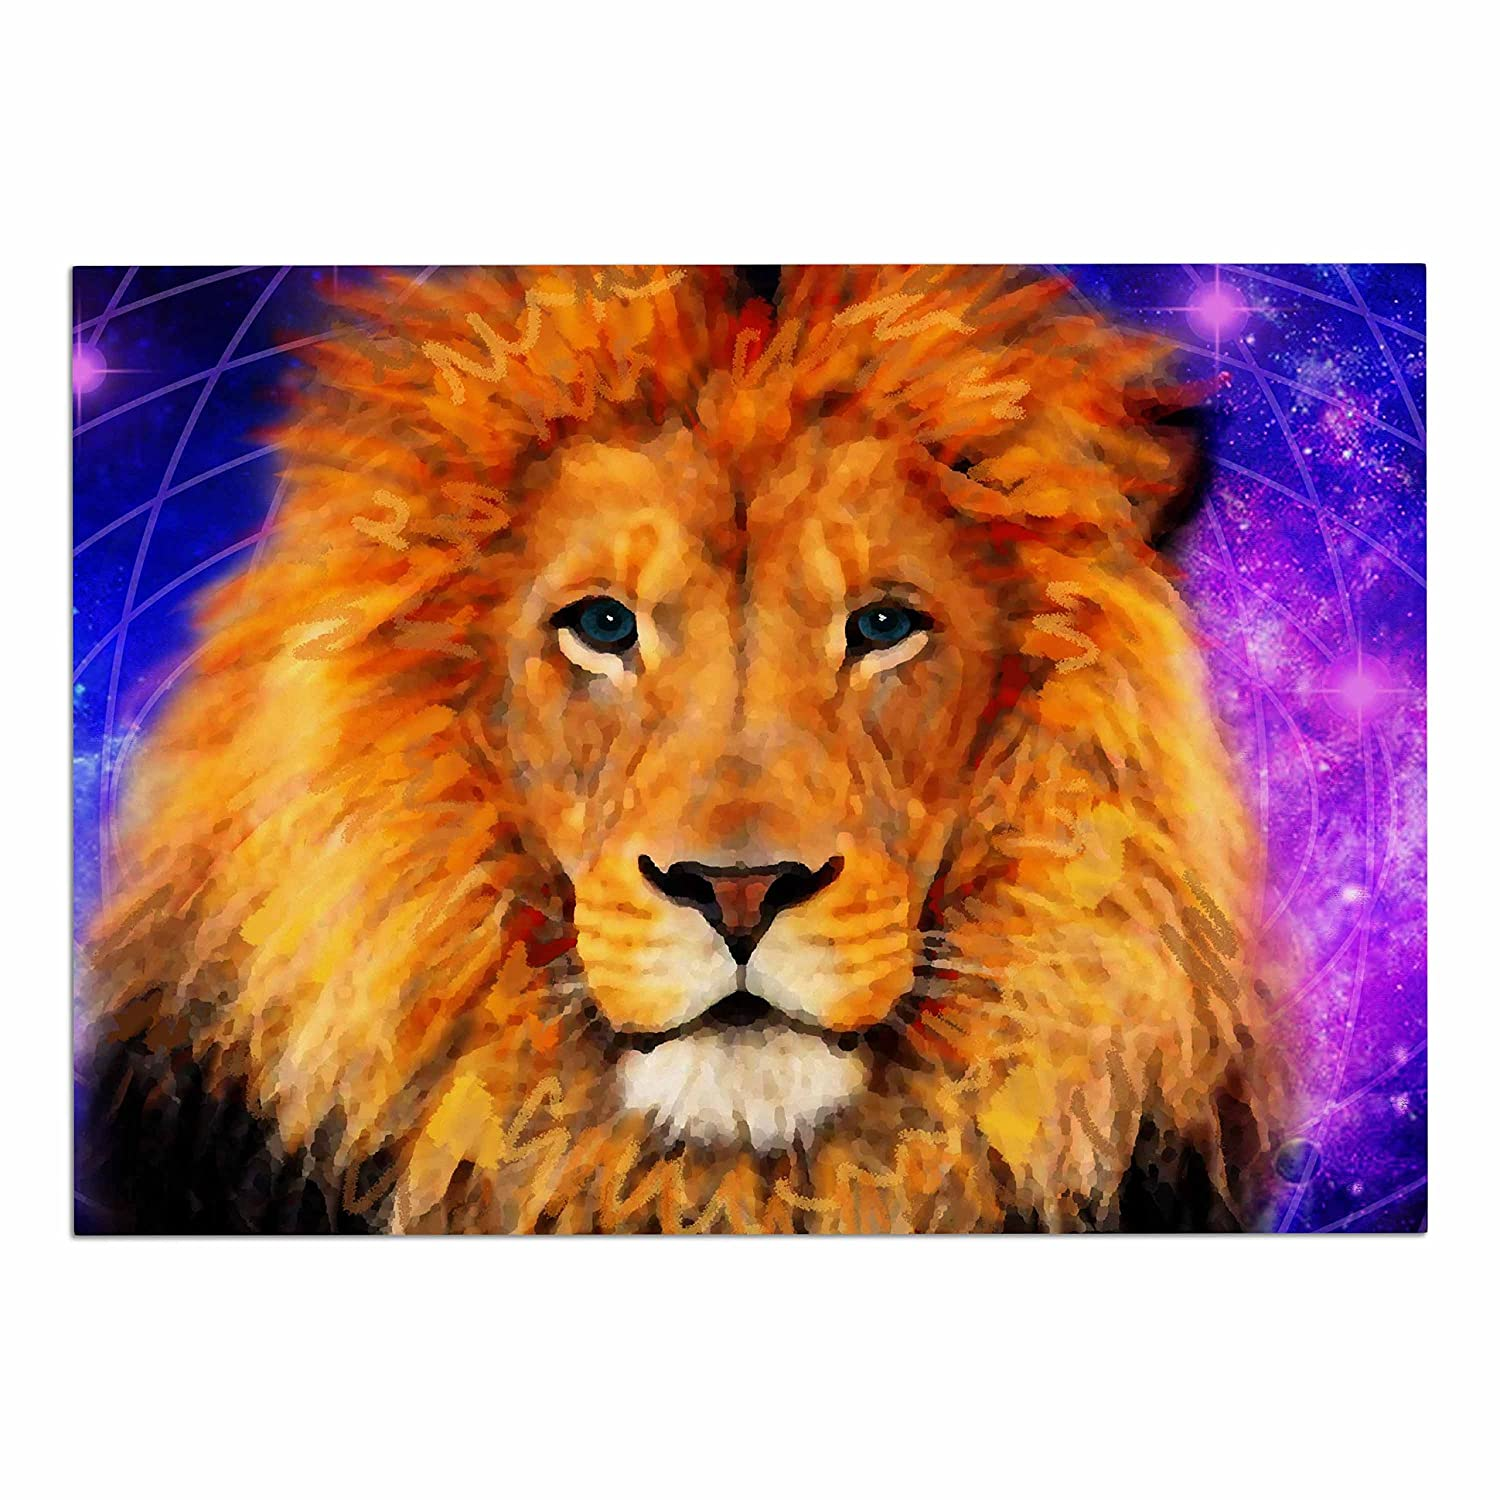 KESS InHouse NL1026ADM02 NL Designs Space Lion Purple orange Dog Place Mat, 24  x 15